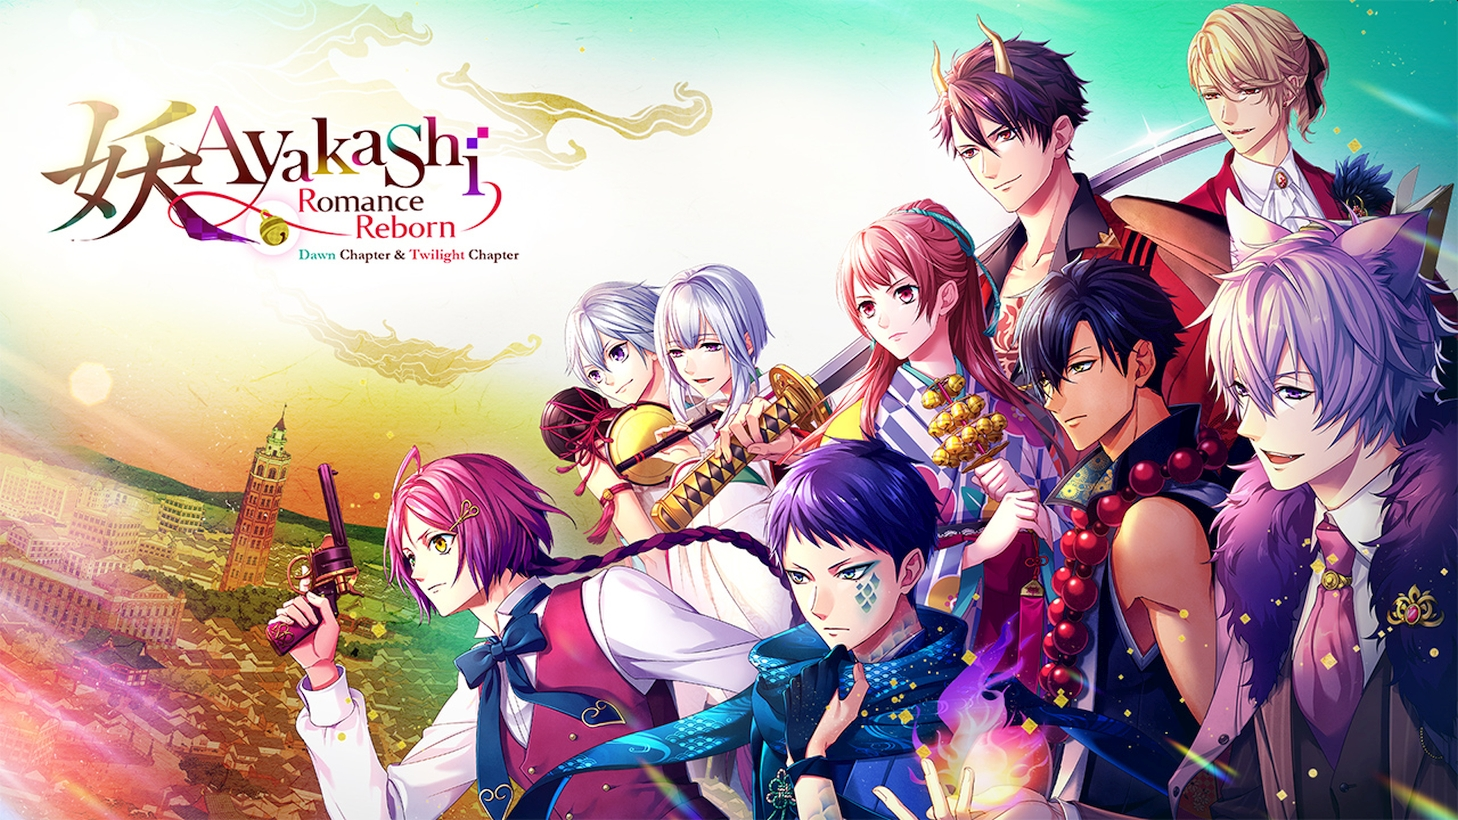 Ayakashi: Romance Reborn Dawn And Twilight Chapters Now Available On Nintendo Switch eShop